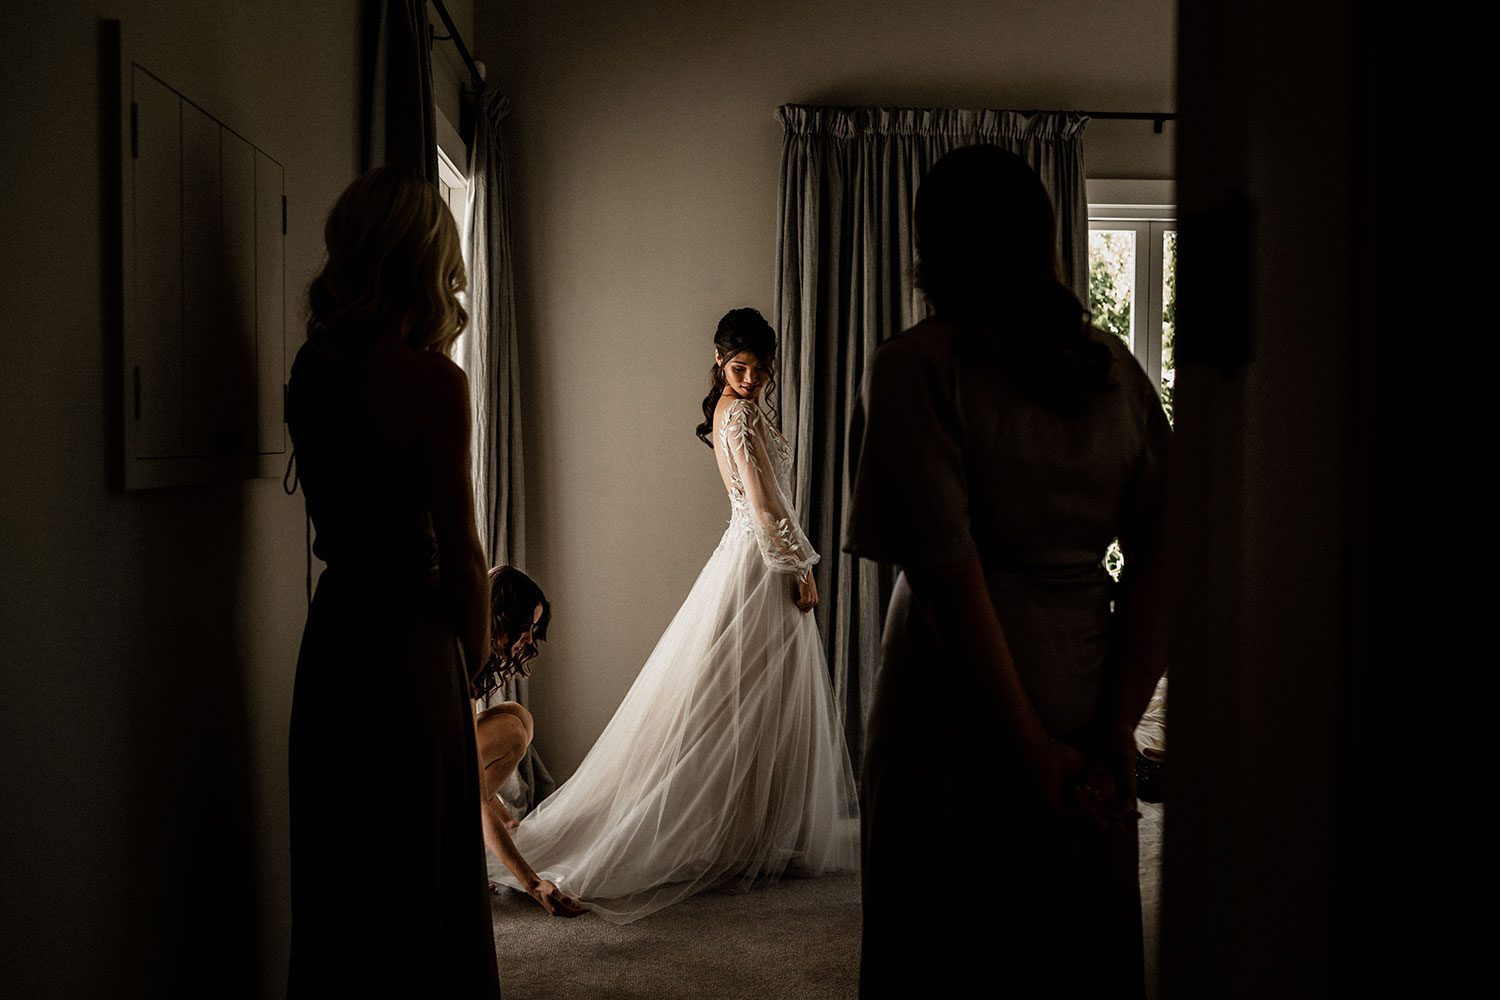 Bride wearing bespoke designer wedding dress by Vinka Bridal Boutique NZ, adorned with delicate applique lace and puffed sleeves - standing near window